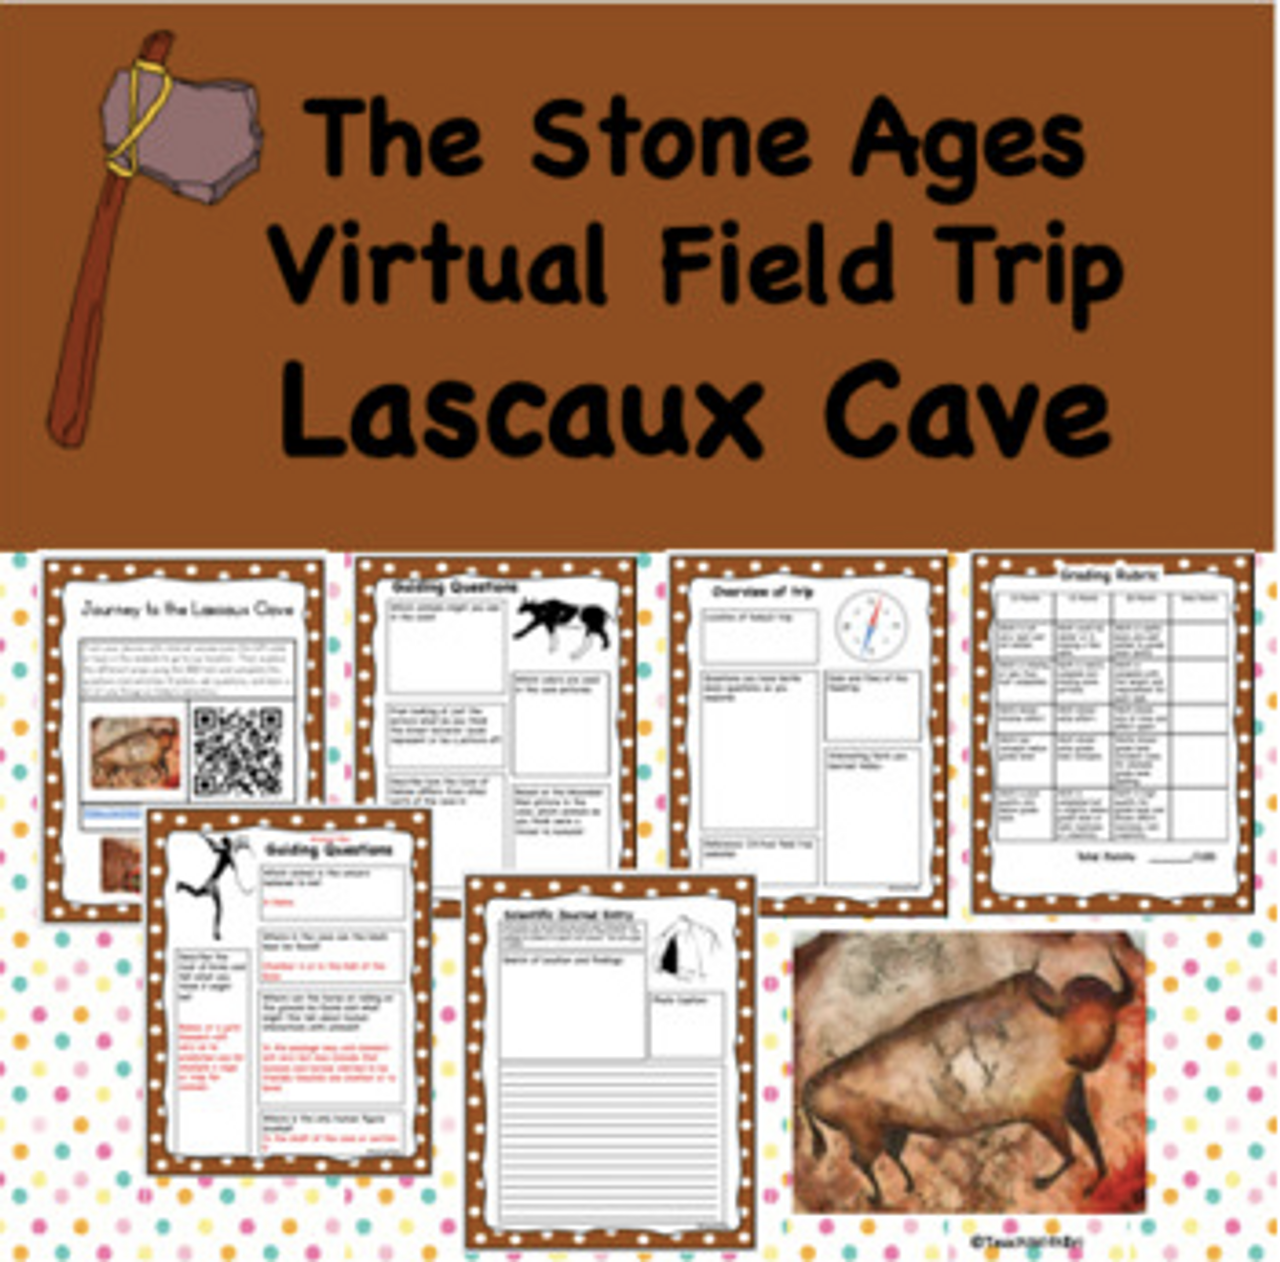 Virtual Field Trip to Lascaux Cave- Stone Ages- Student Activities